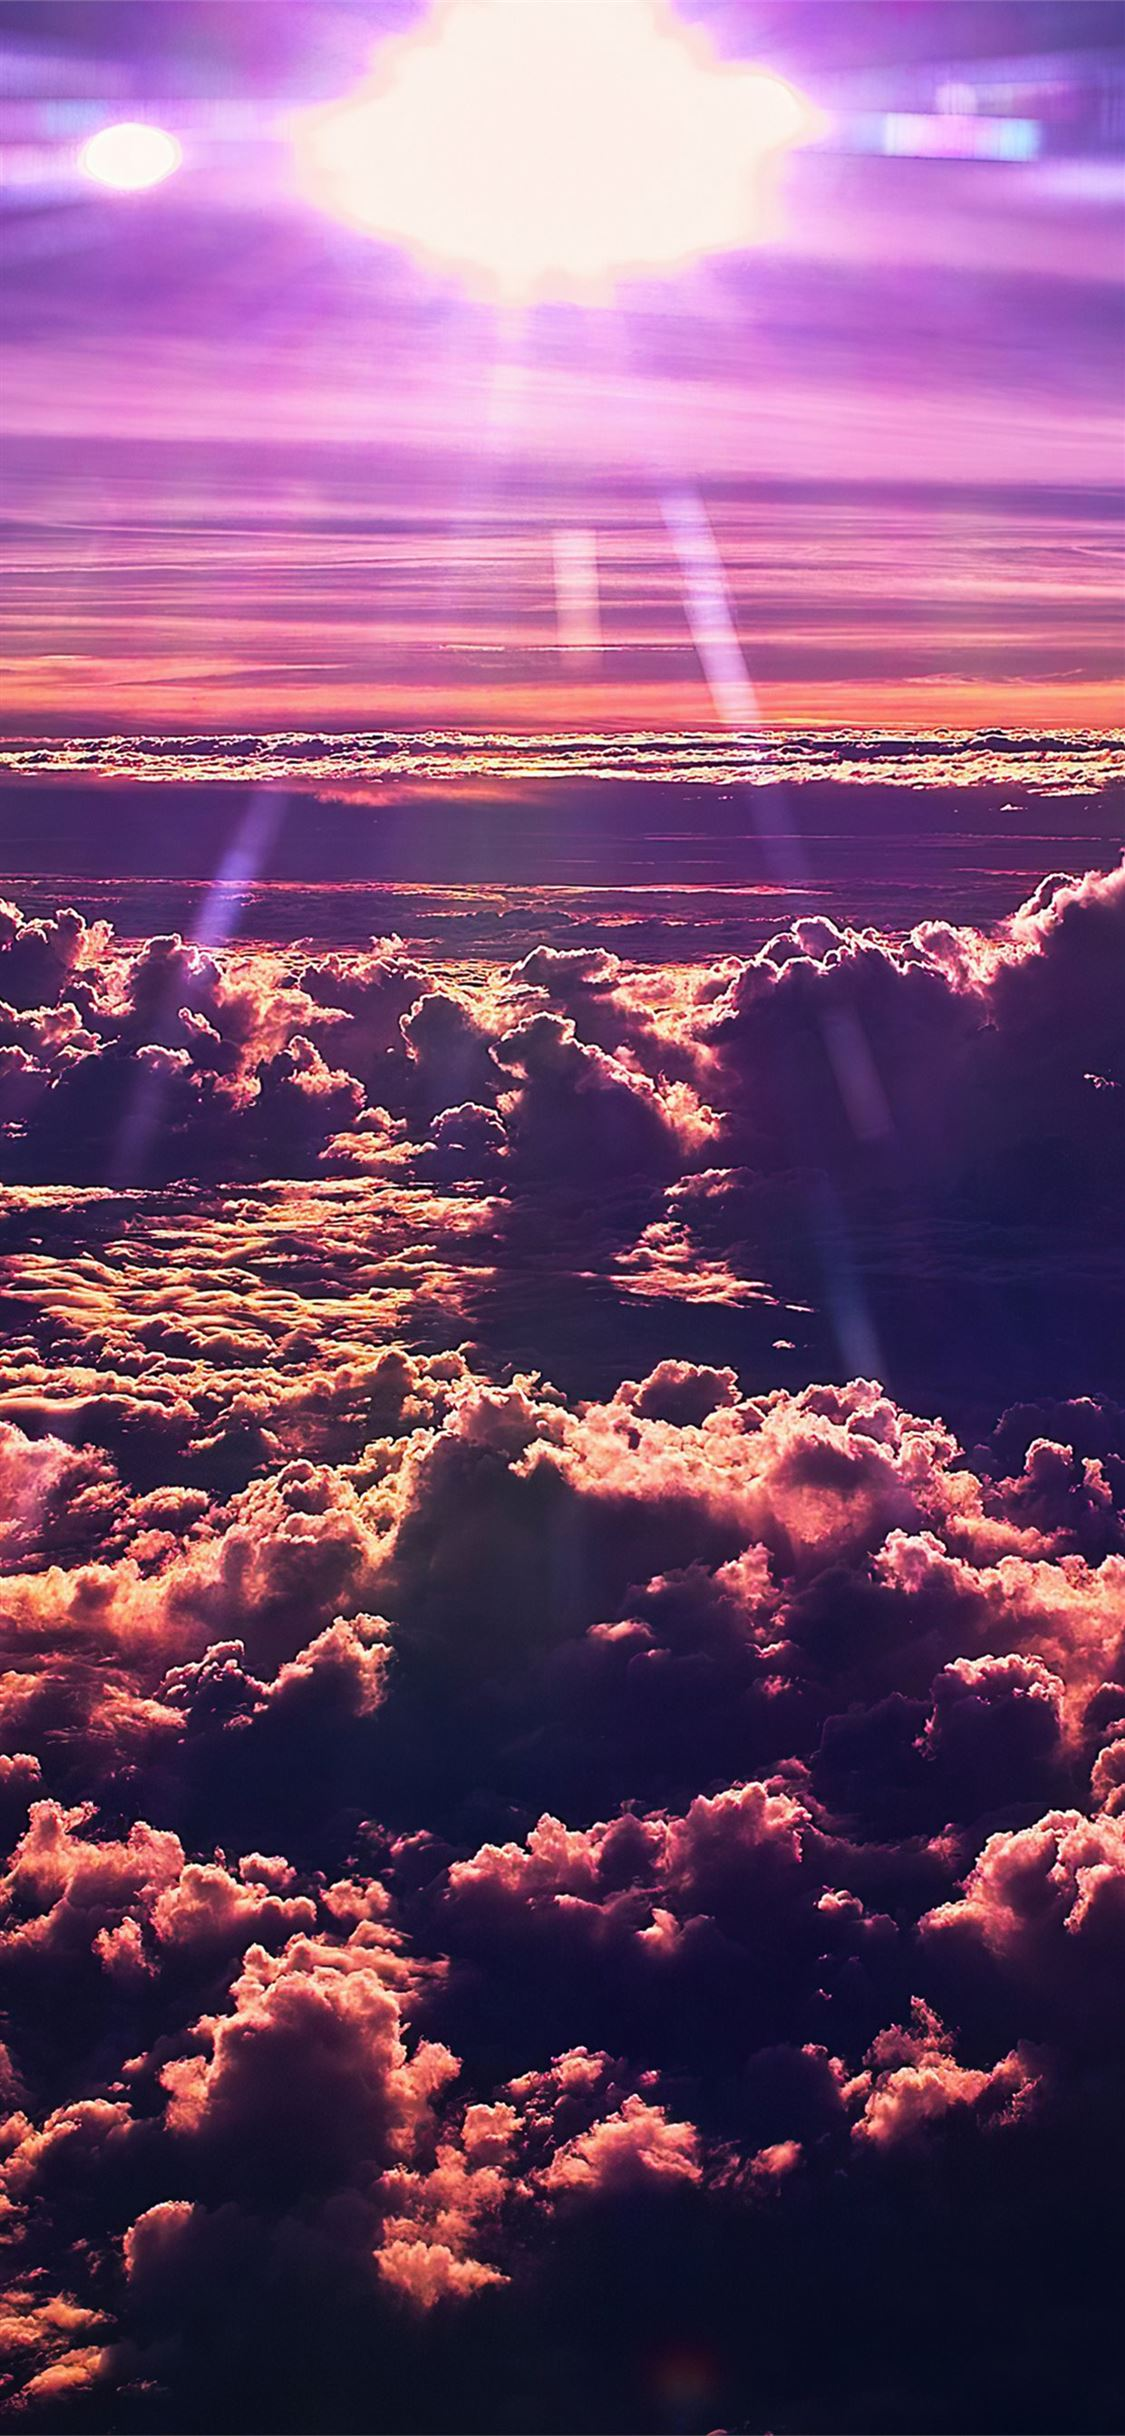 sky clouds sun 4k iPhone 11 Wallpapers Free Download